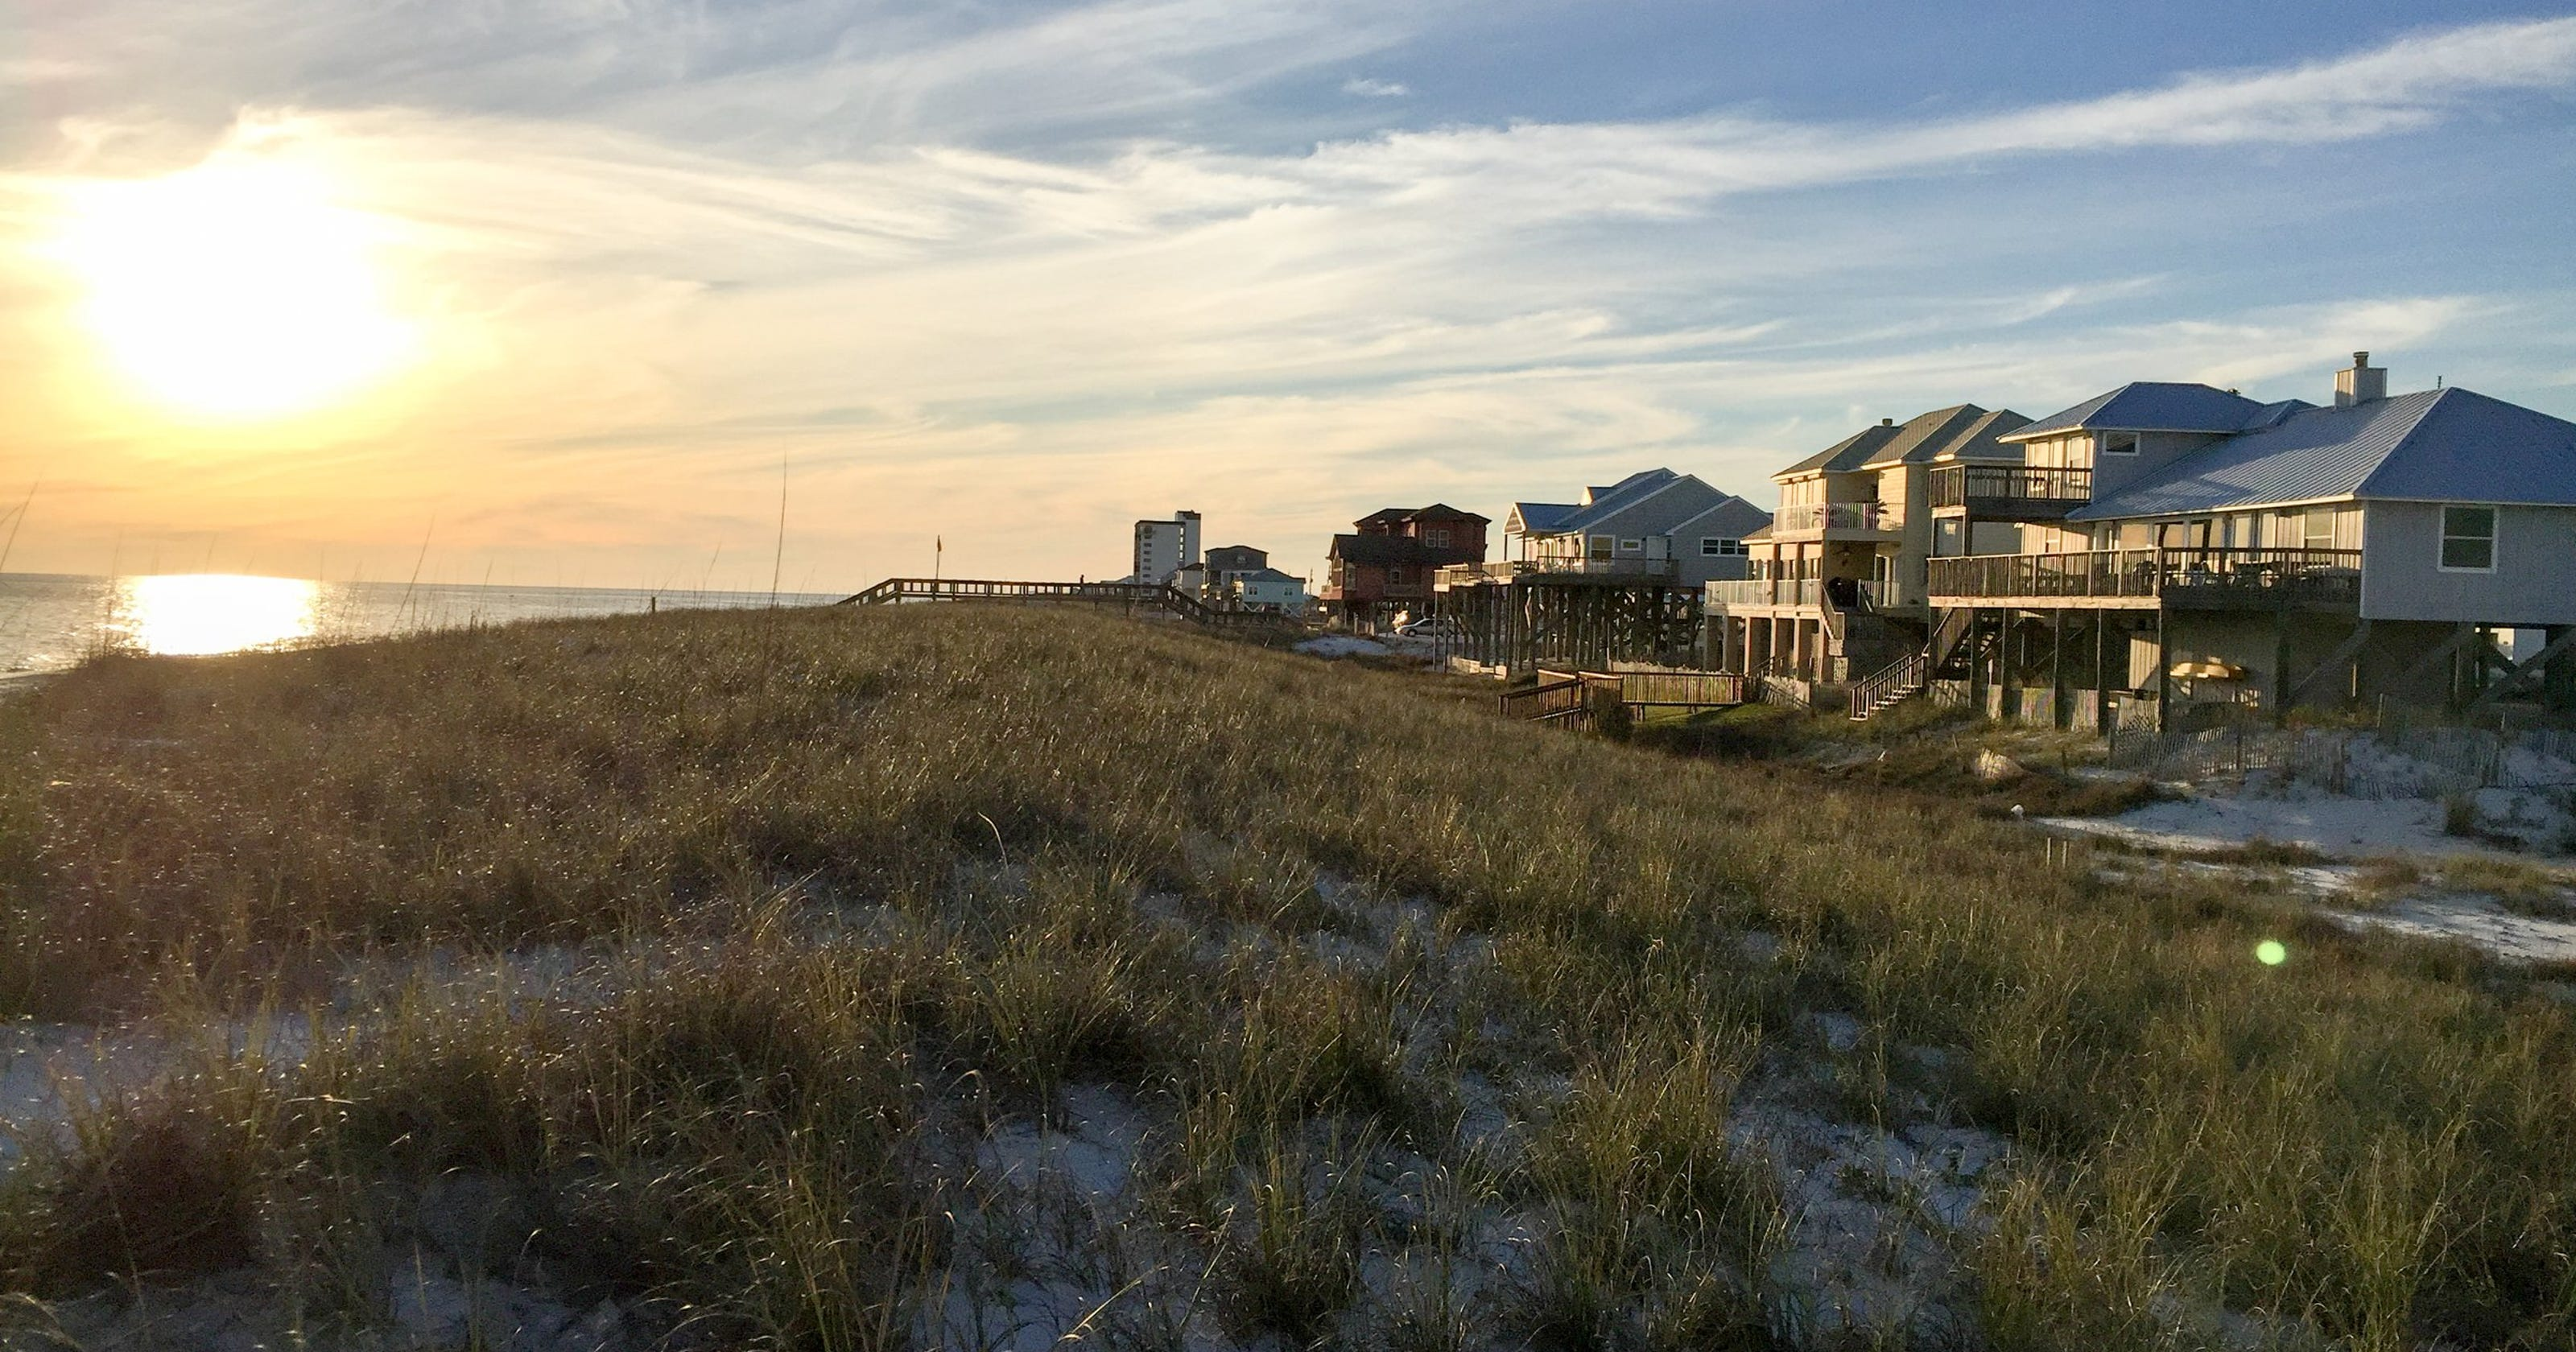 Solitude, spring breakers can both be found in Florida Panhandle